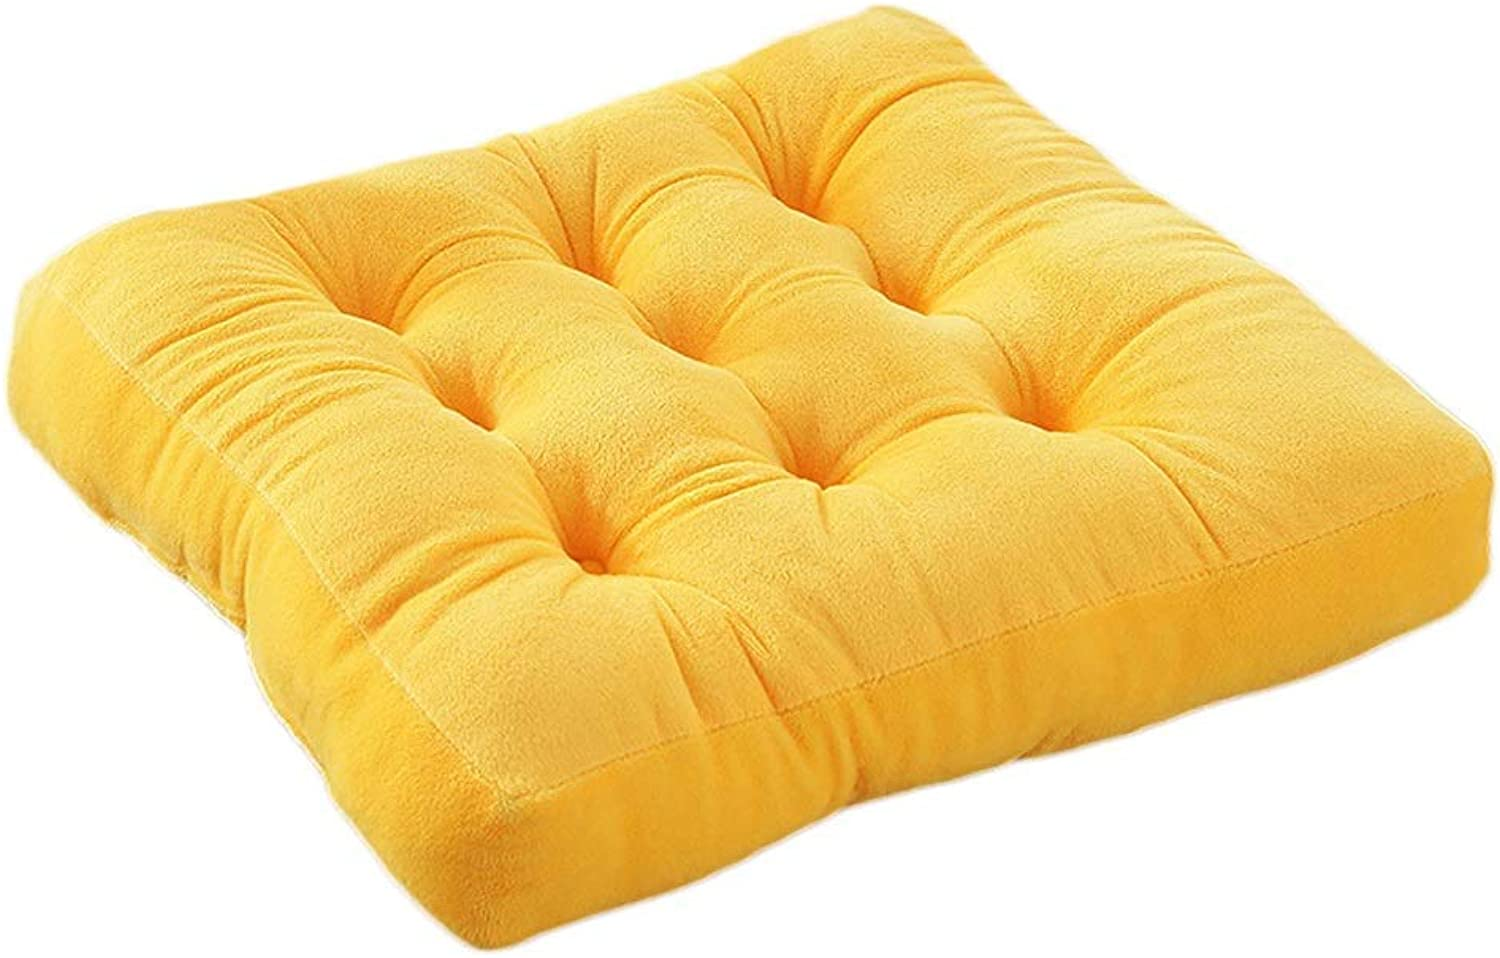 Seat Cushion Seat Cushion Yellow Cushion Pure color Simple Office Computer Chair Thicken Sofa Lumbar Cushion Four Seasons Available Chair Pad (Size   38  38  10cm)